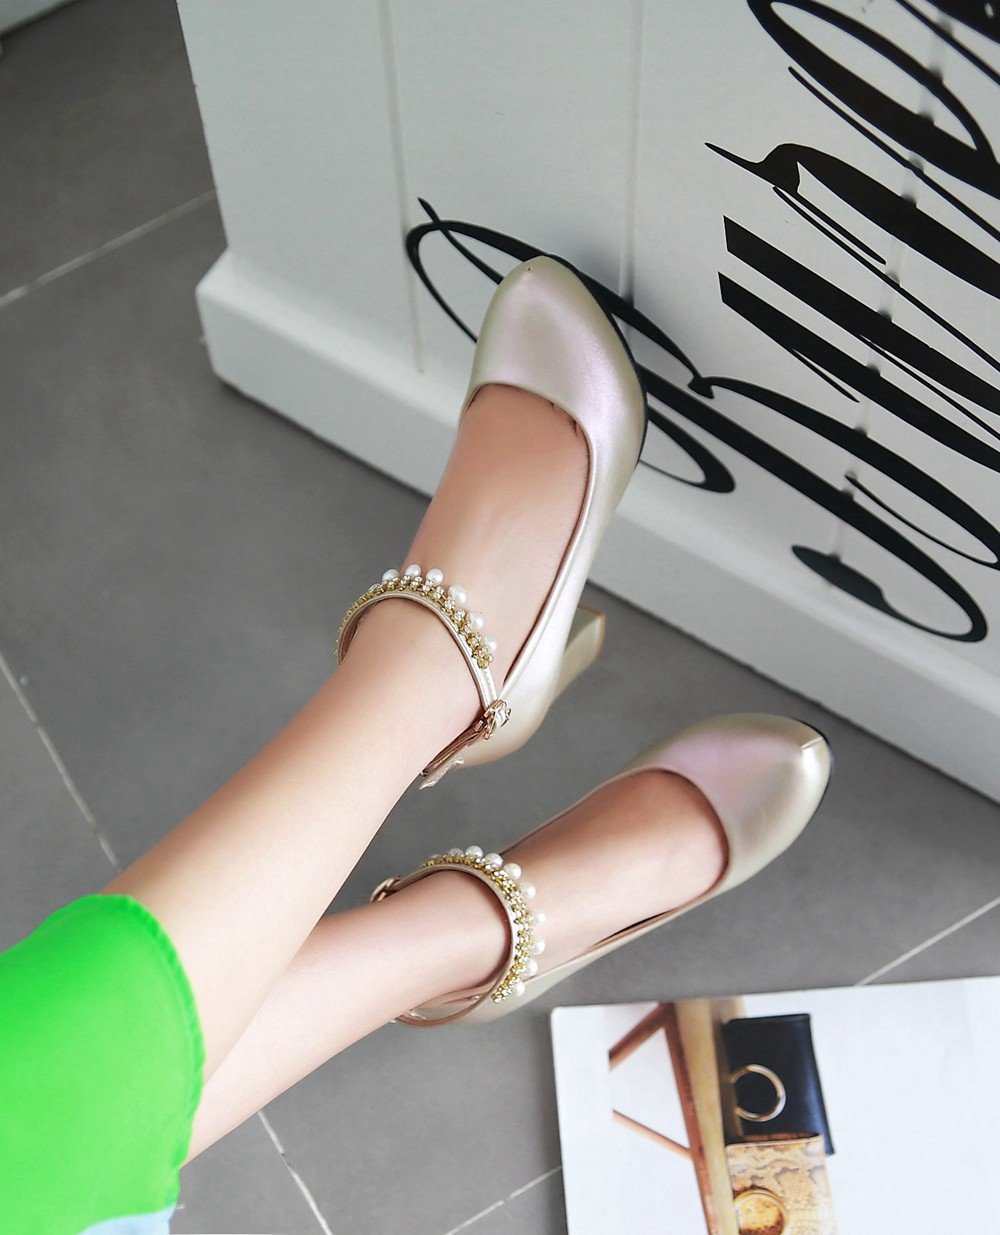 2017 Chunky High Heeled Pink Bridal Wedding Shoes Beaded White Female Buckle Elegant Pumps Silver Gold36